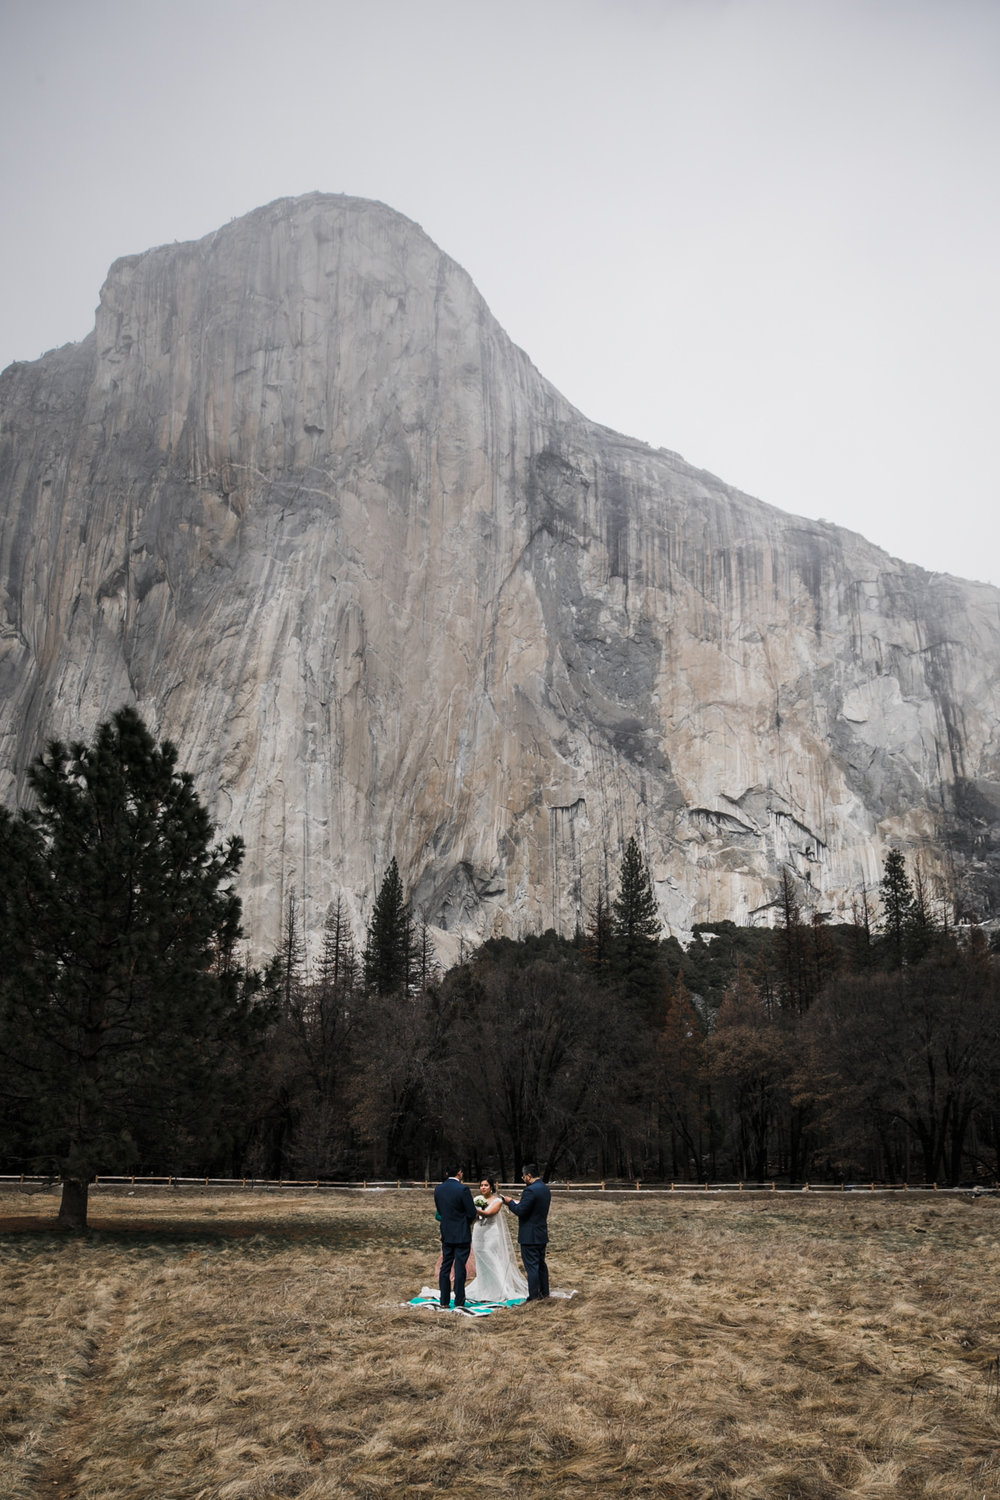 el cap meadow is one of our favorite wedding locations in yosemite